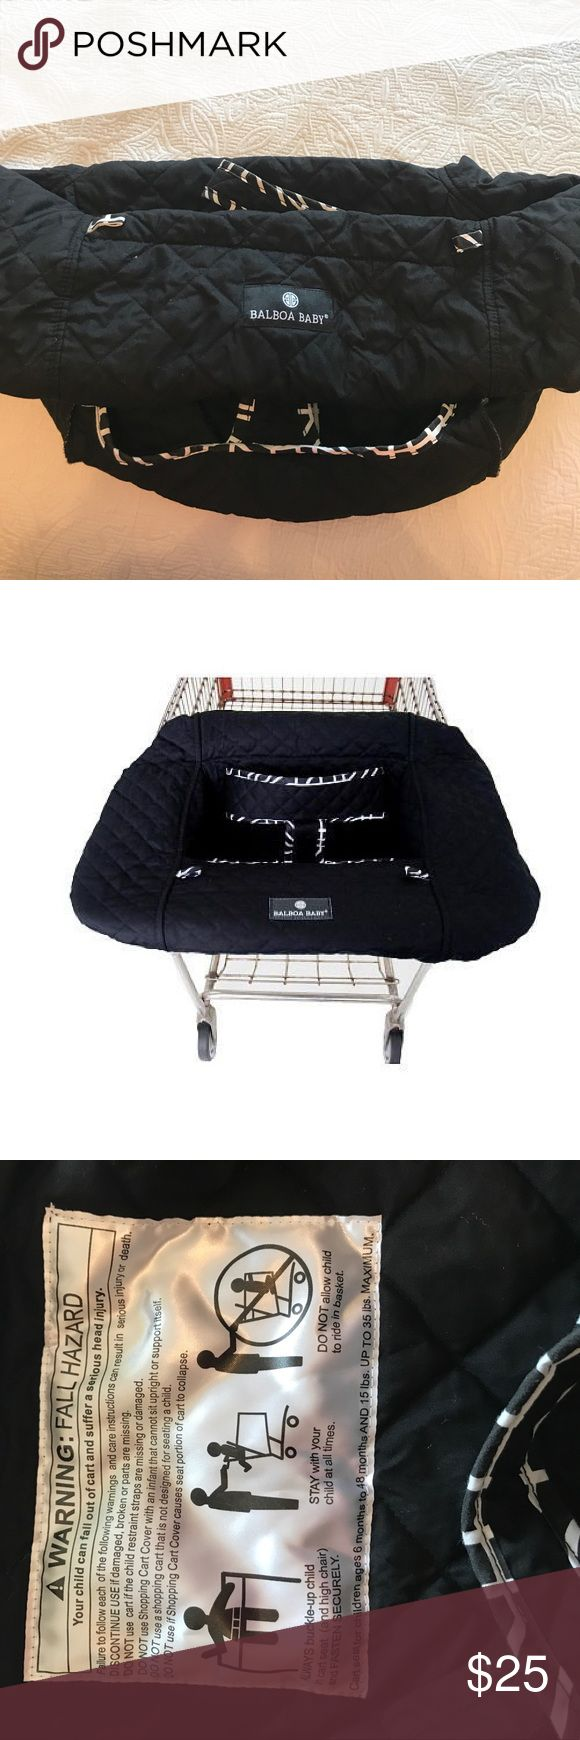 Balboa Baby Shopping Cart Cover Black and white shopping cart cover by Balboa Baby for sale! Gently used but in fabulous condition! Balboa Baby Accessories